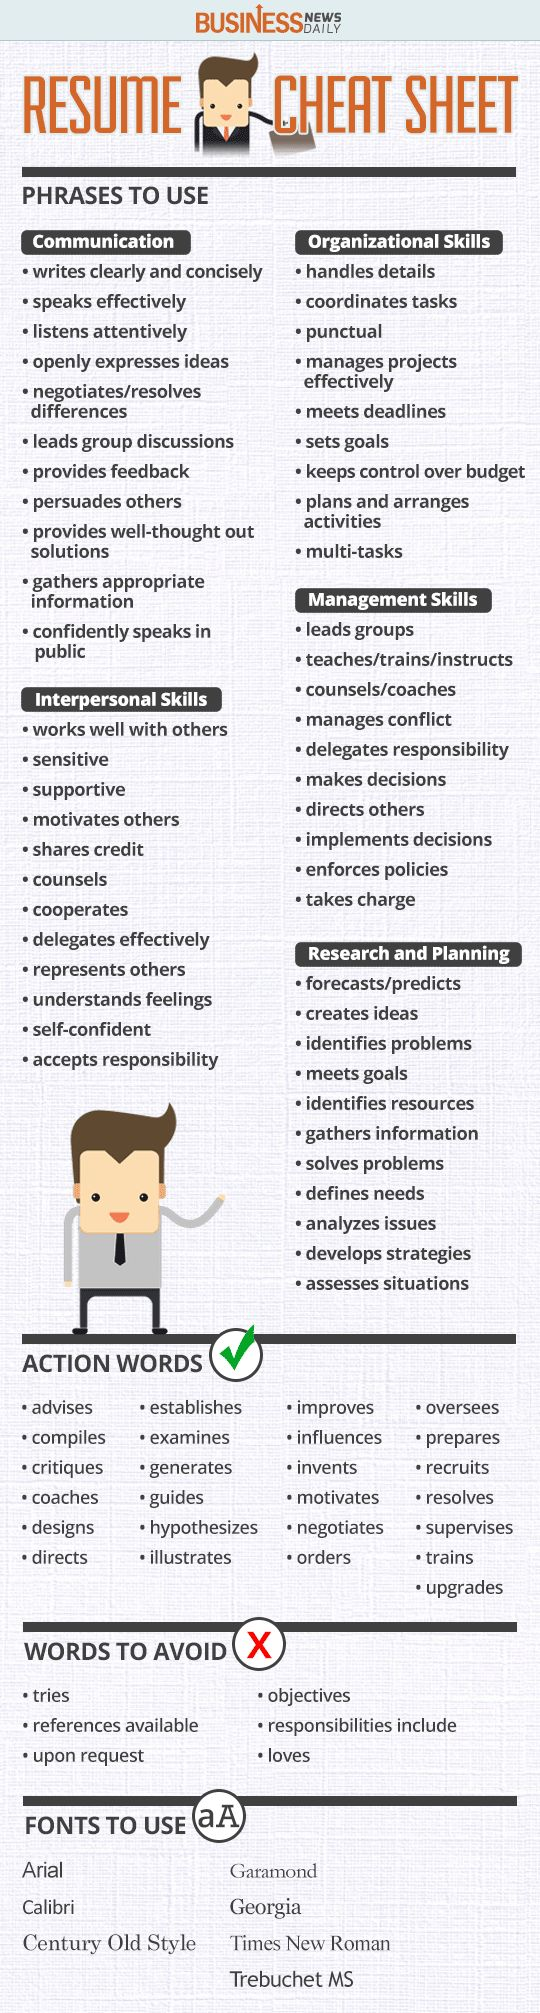 Opposenewapstandardsus  Ravishing  Ideas About Resume On Pinterest  Cv Format Resume Cv And  With Licious Resume Cheat Sheet Infographic Andrews Almost Done With A Complete Unit On Employment Which With Breathtaking Cover Letter Examples Resume Also Functional Resume Template Word In Addition Waiter Resume Sample And Contemporary Resume As Well As Resume Template Microsoft Word  Additionally Engineering Resume Objective From Pinterestcom With Opposenewapstandardsus  Licious  Ideas About Resume On Pinterest  Cv Format Resume Cv And  With Breathtaking Resume Cheat Sheet Infographic Andrews Almost Done With A Complete Unit On Employment Which And Ravishing Cover Letter Examples Resume Also Functional Resume Template Word In Addition Waiter Resume Sample From Pinterestcom